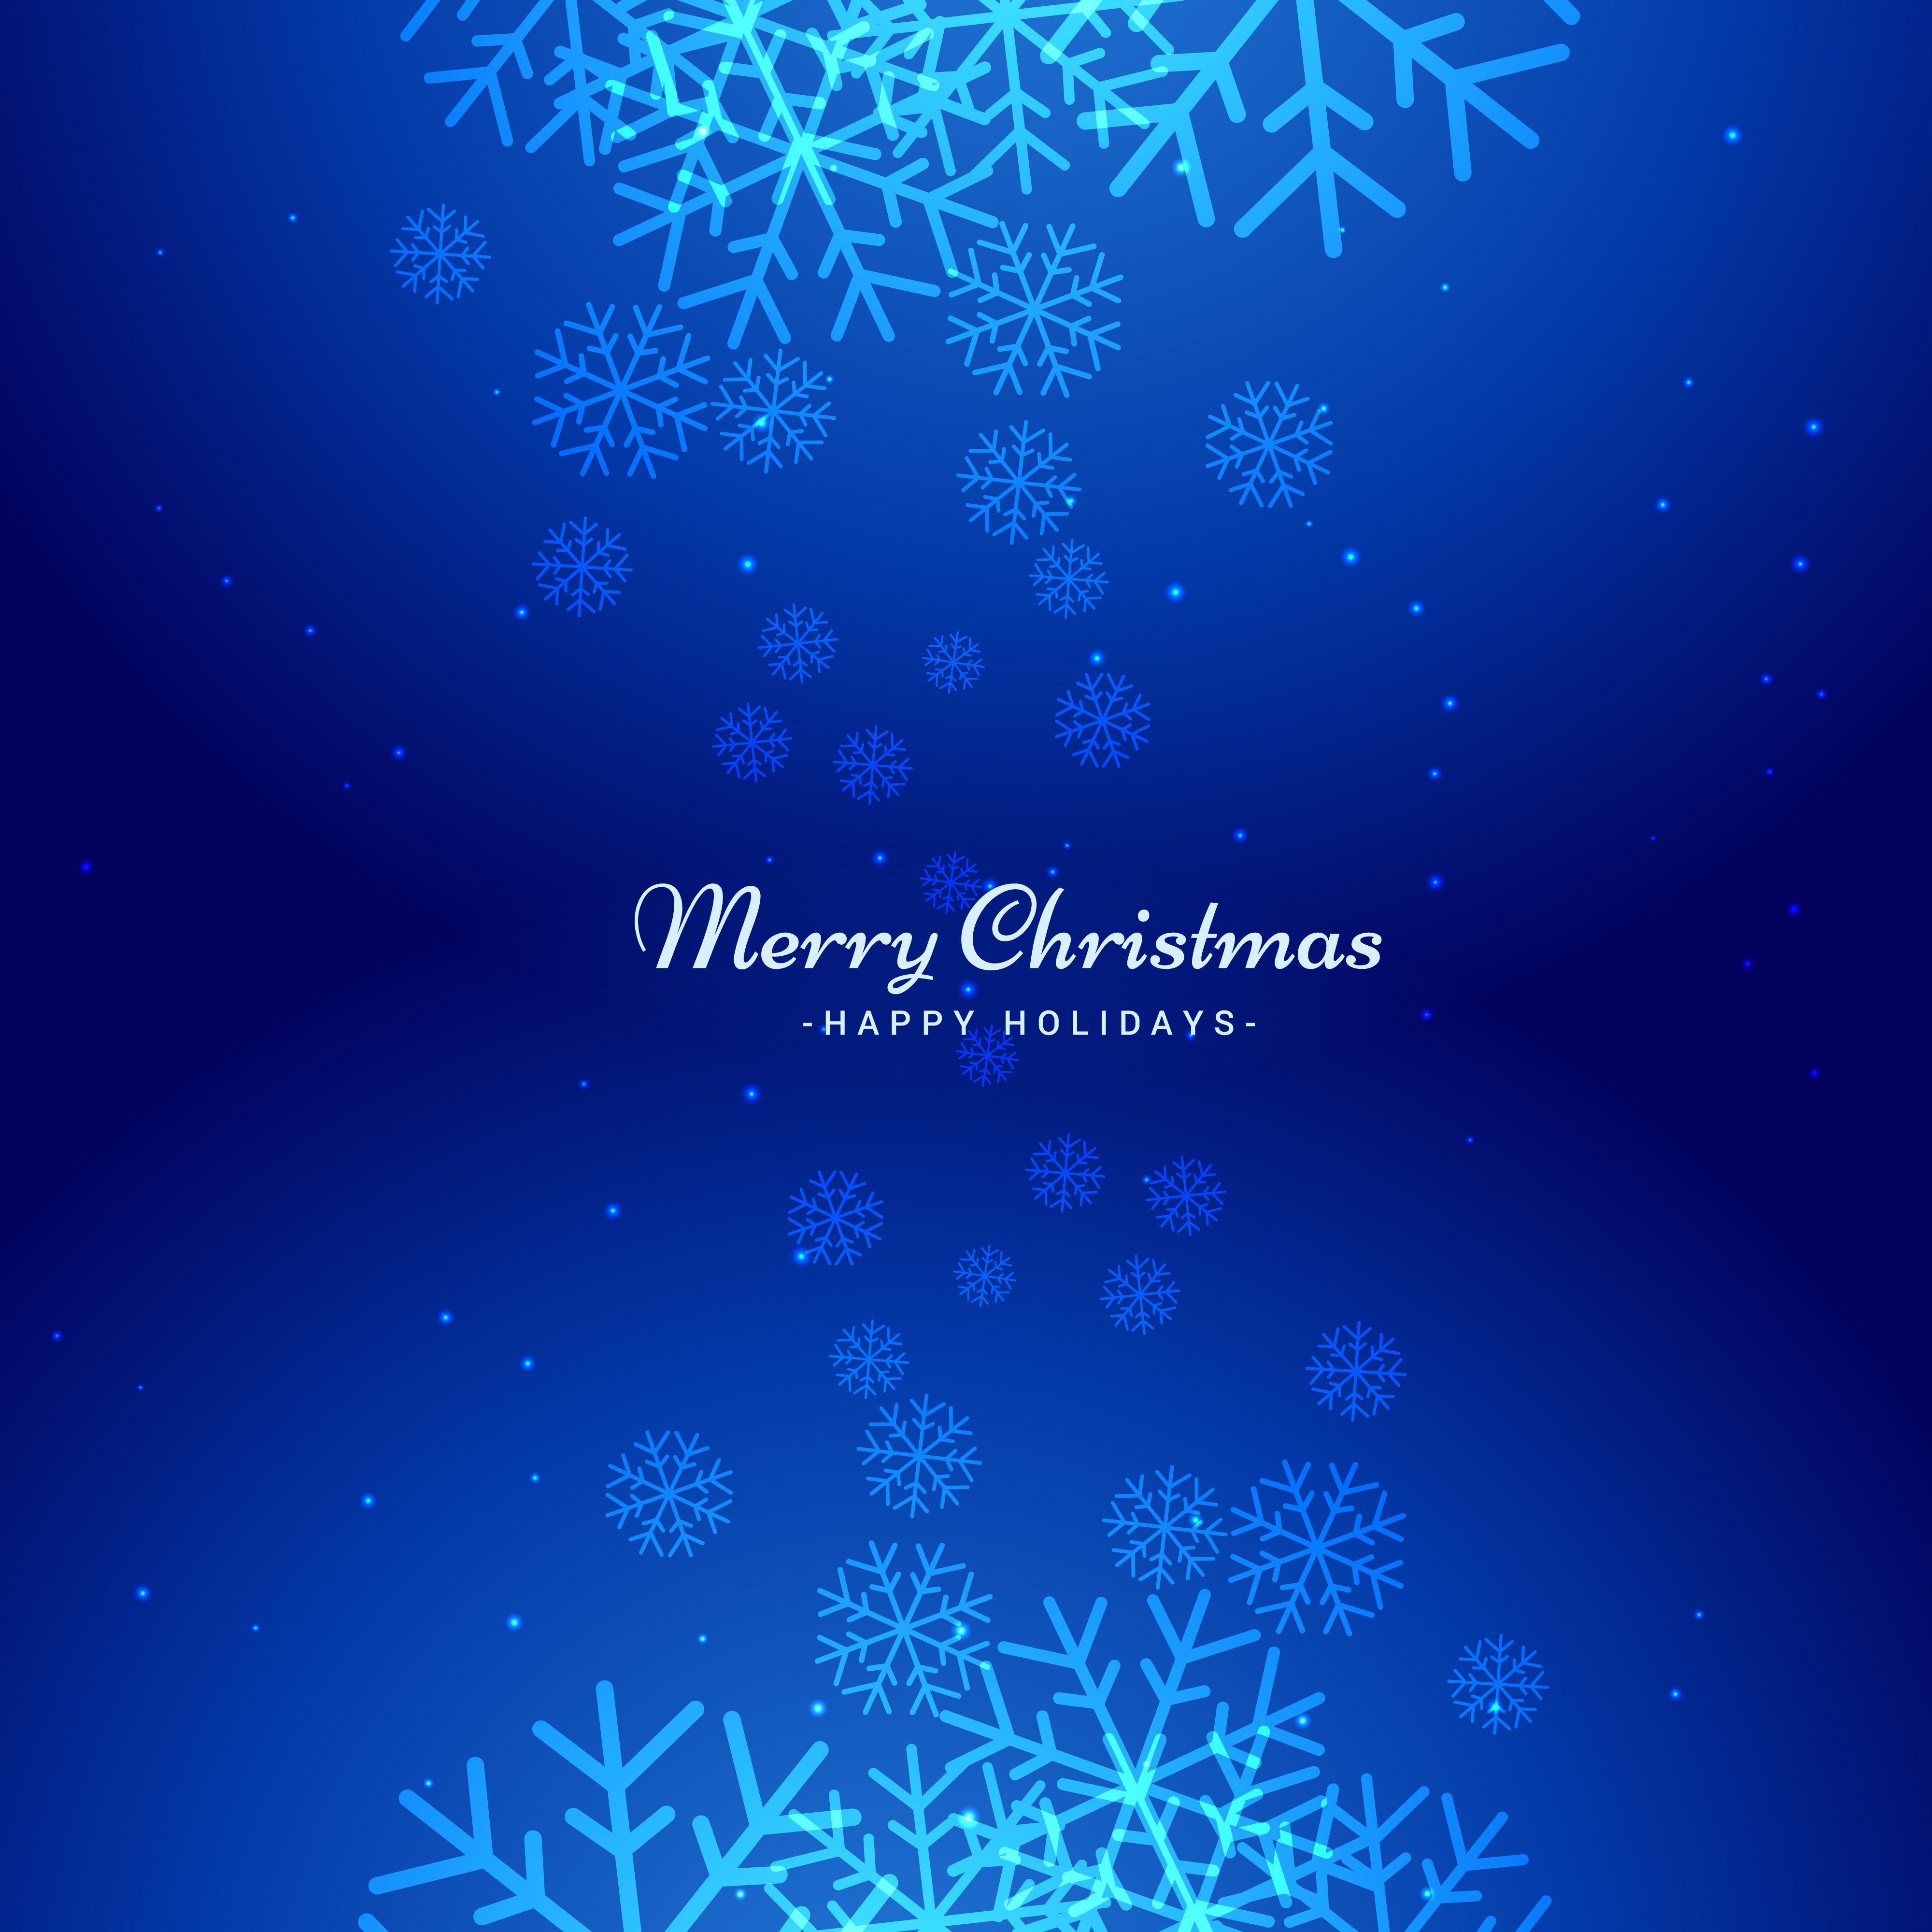 Winter Christmas Snowflakes Background Download Free